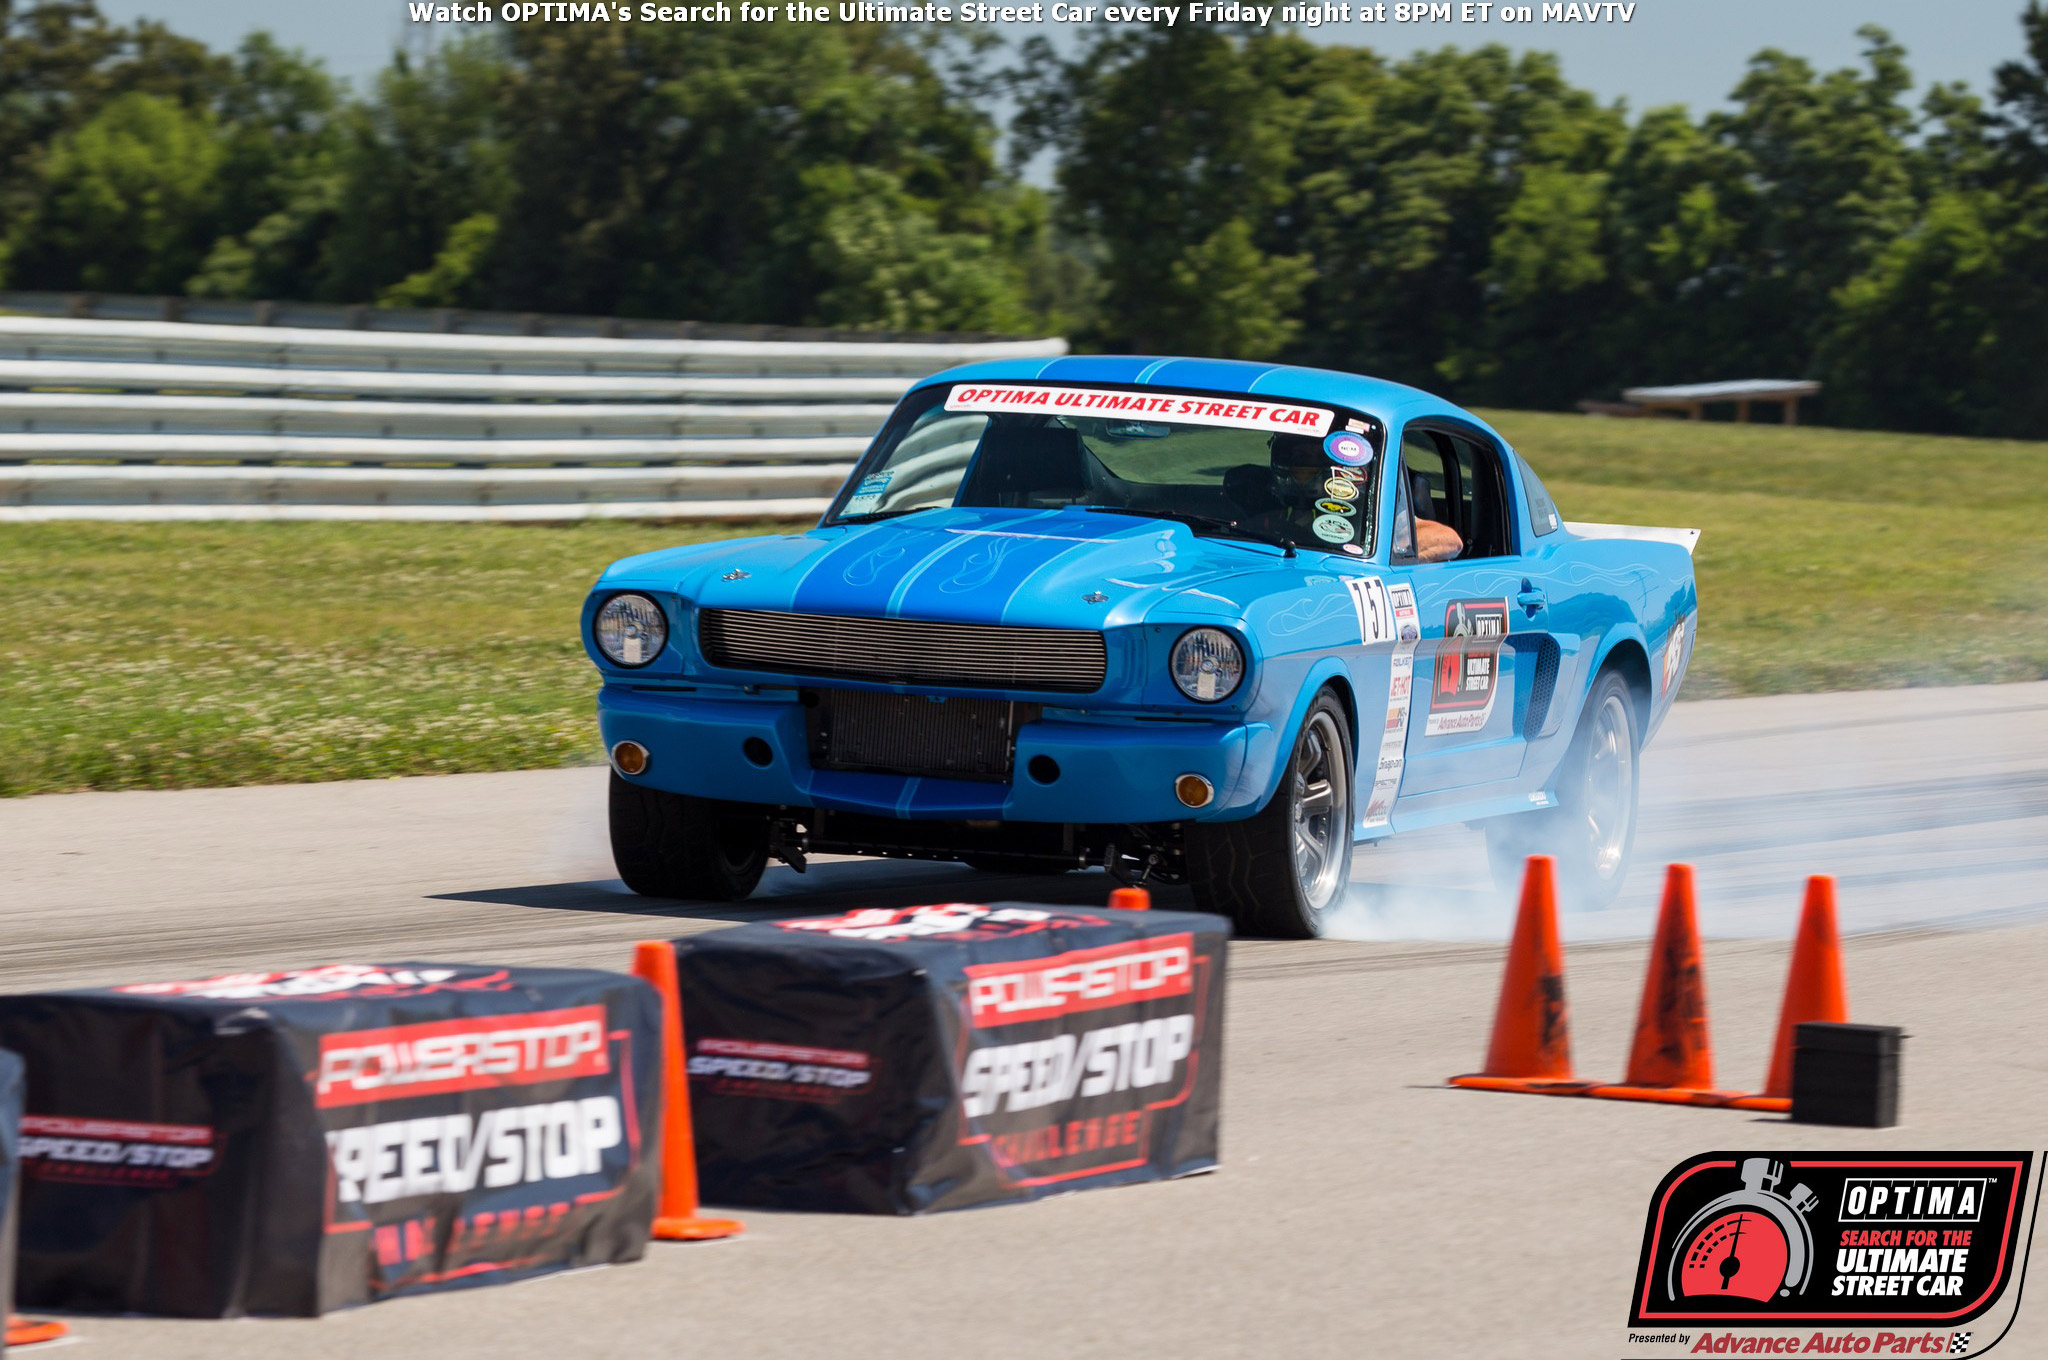 Ron Schoch is one of those rare guys, who builds a beautiful car, but isn't afraid to push it hard on a race track. The judges in the Lingenfelter Design & Engineering Challenge were impressed enough to award him the runner-up position in the GTL class.